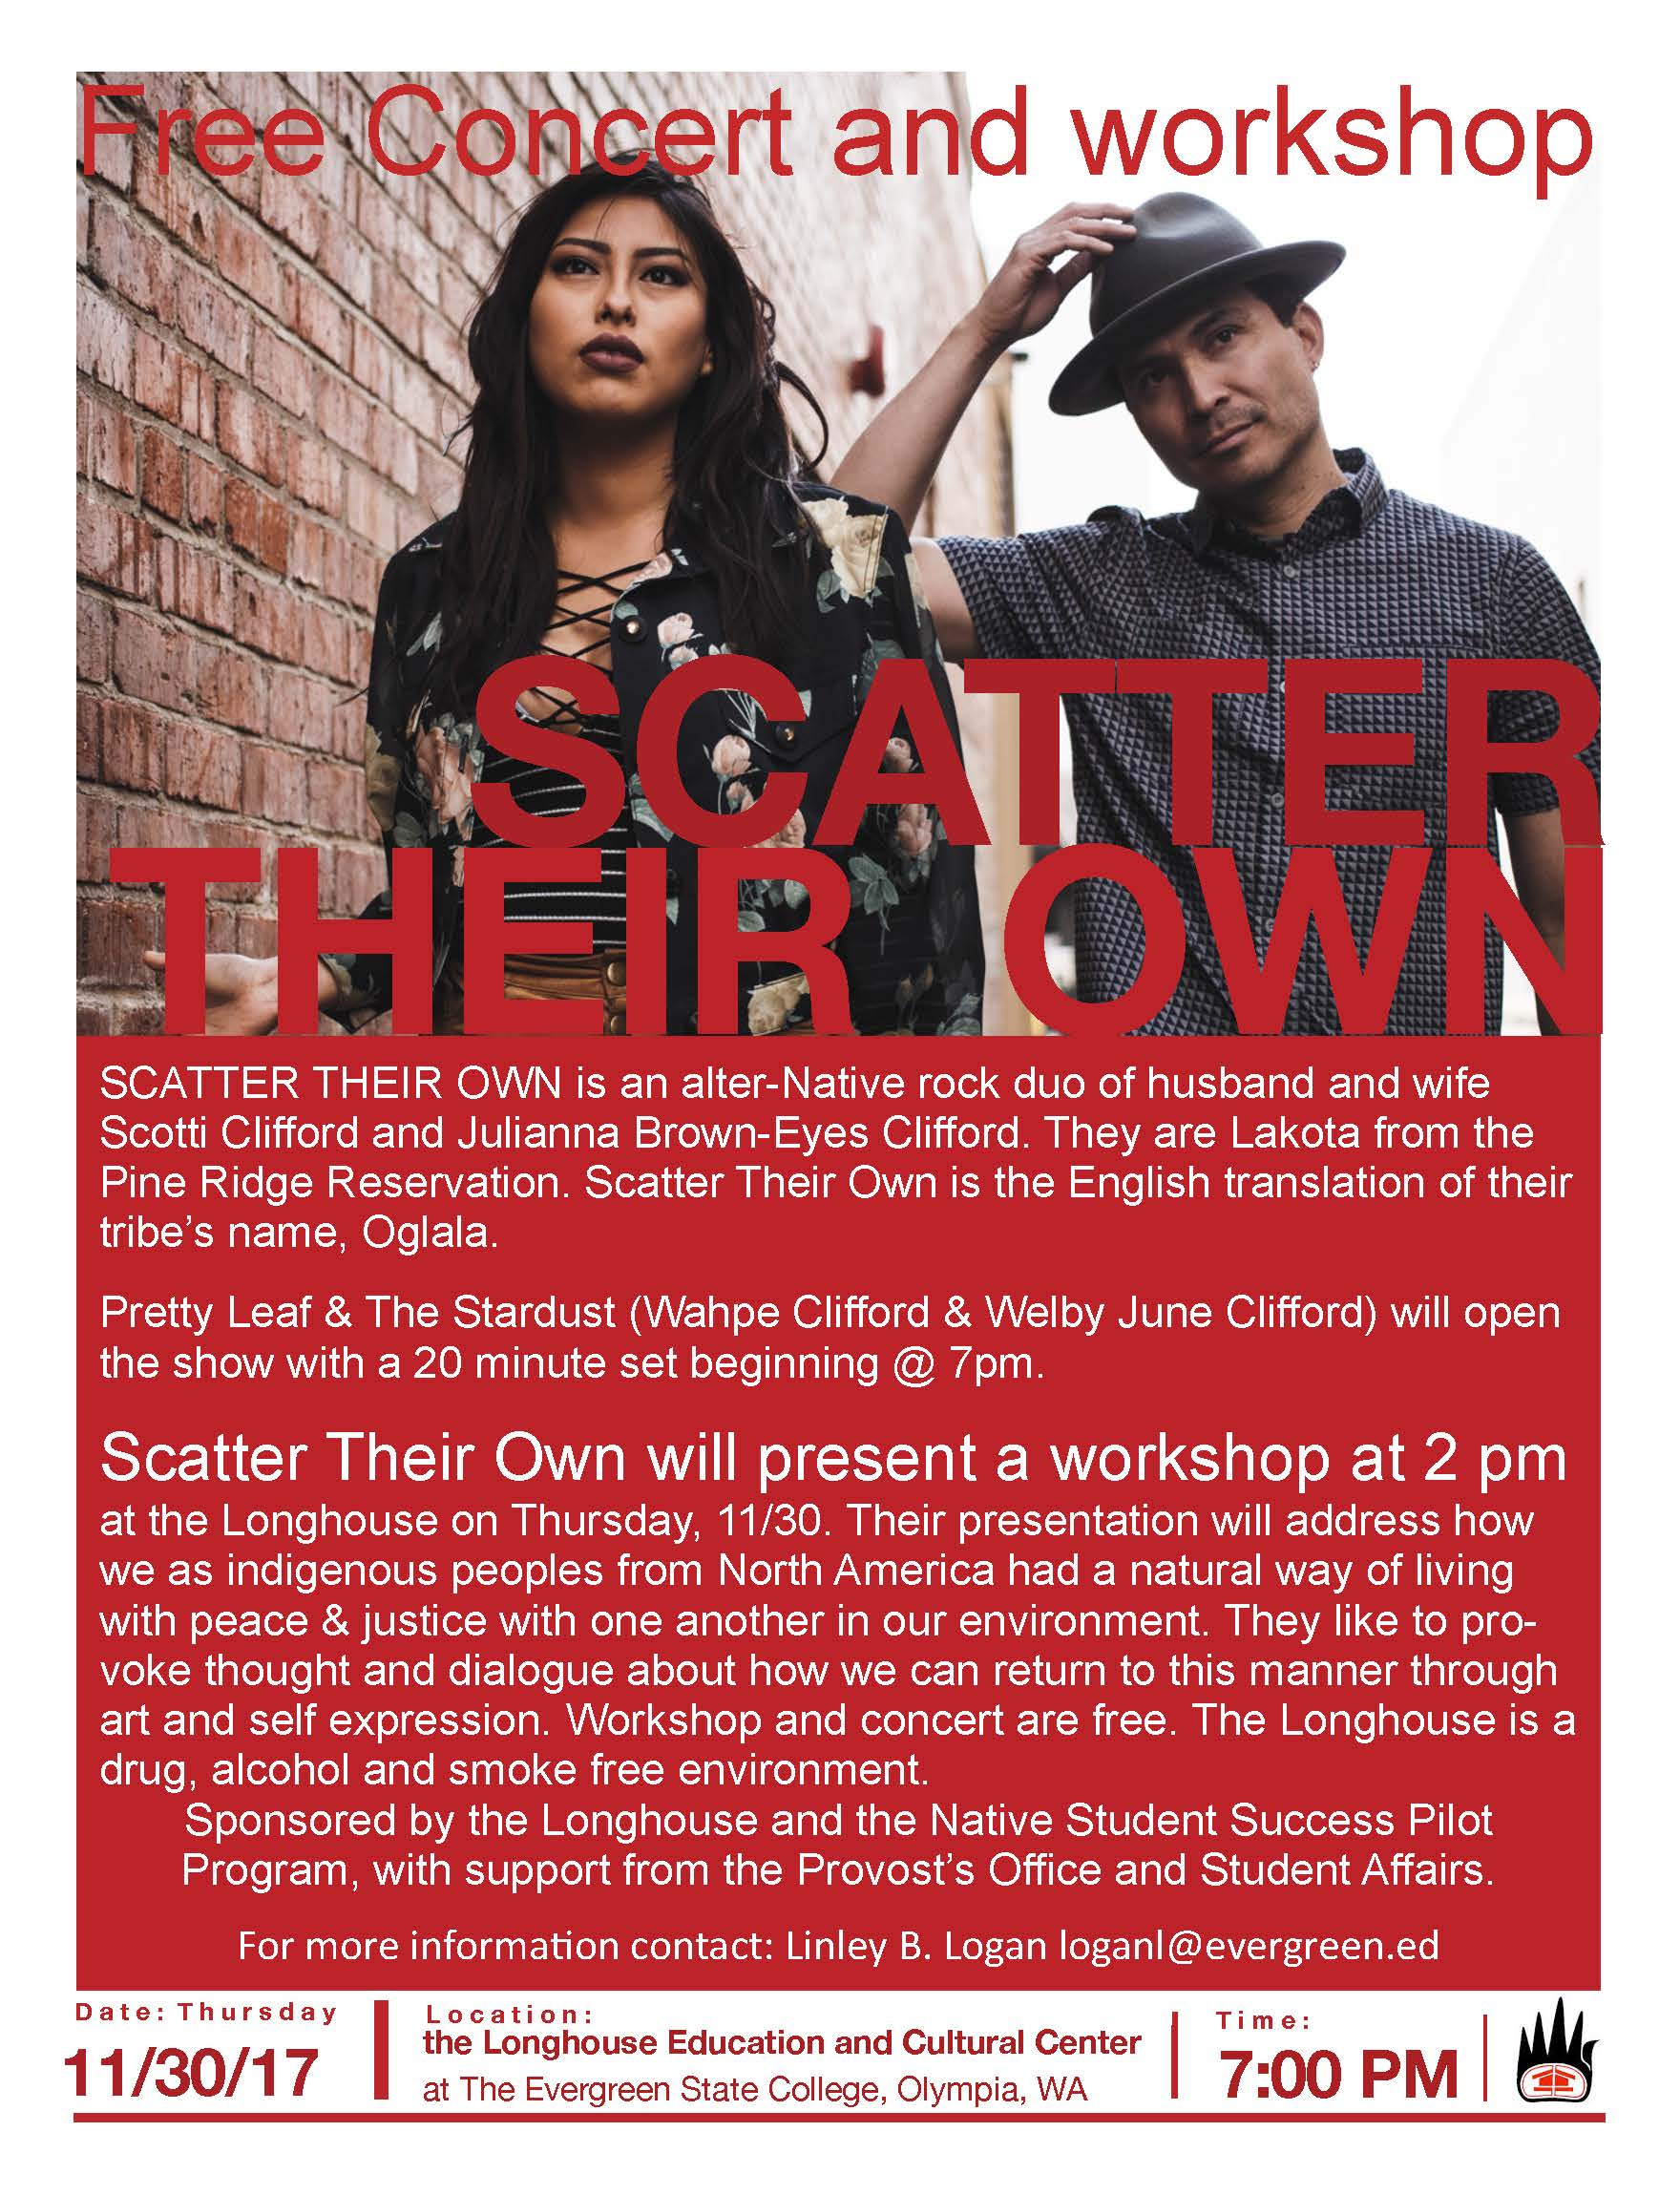 Free Scatter Their Own concert and workshop on November 30, 2017, 7:00 p.m.